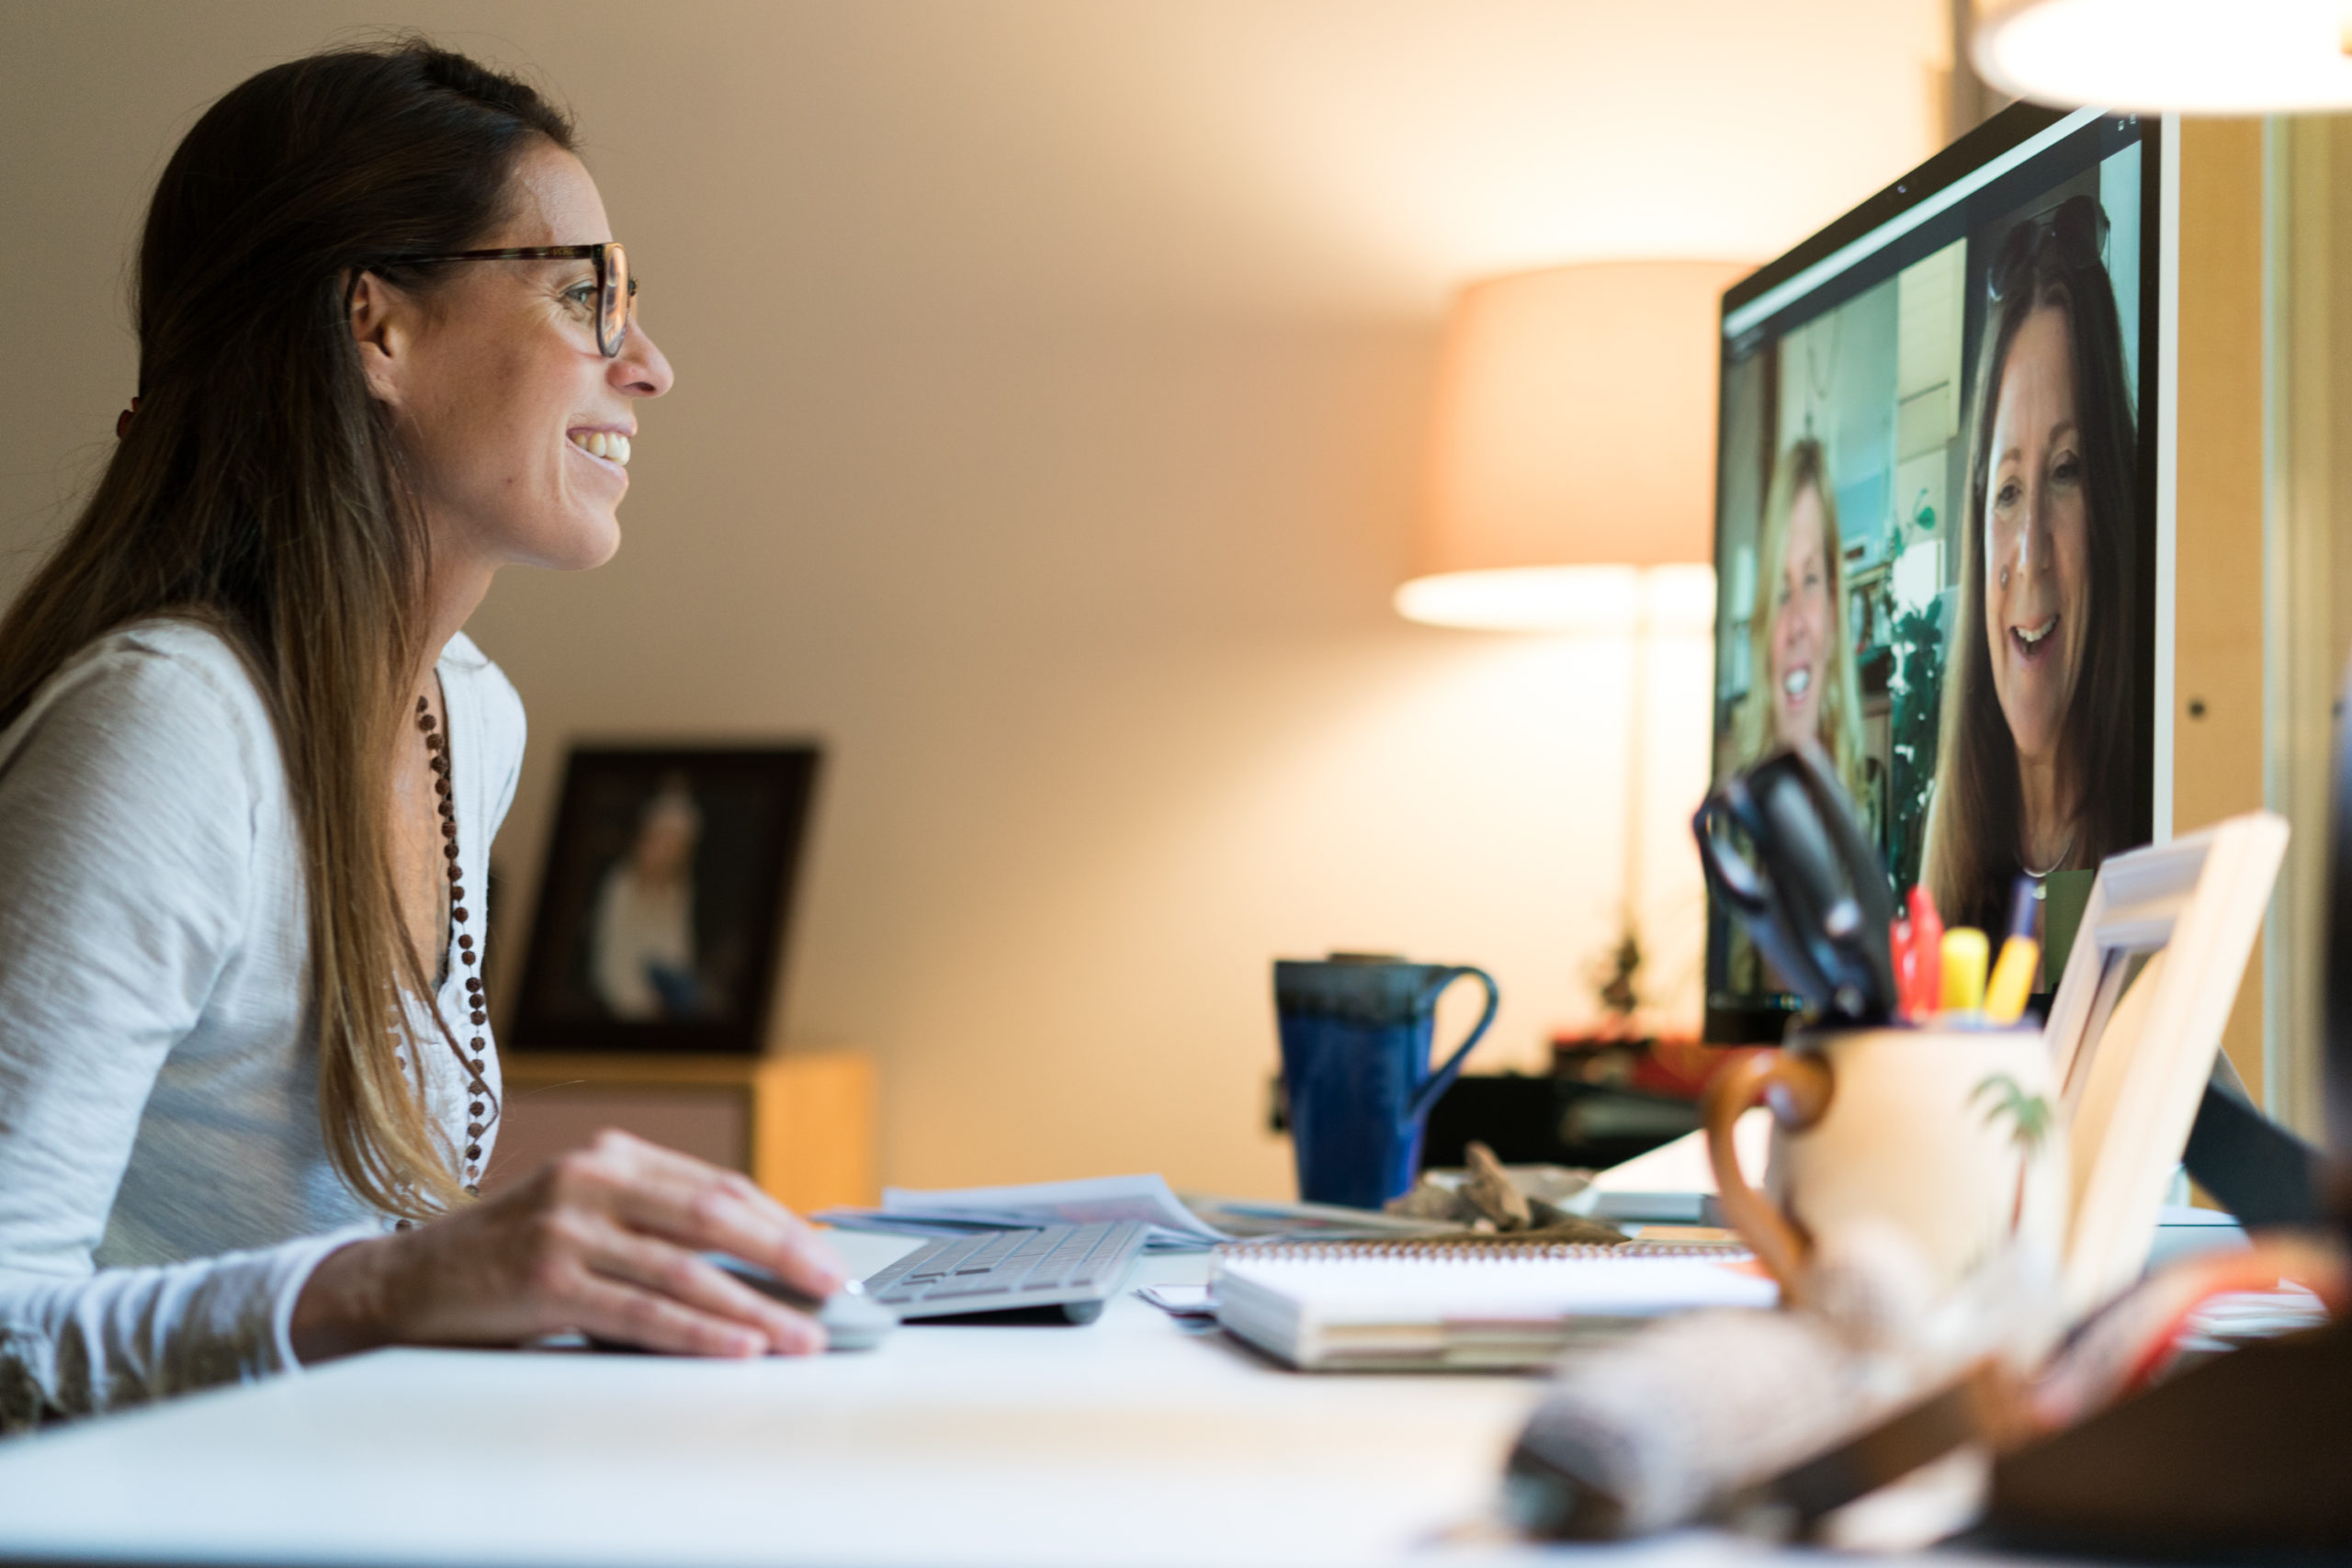 Smiling woman meeting remotely with two team members on a computer screen